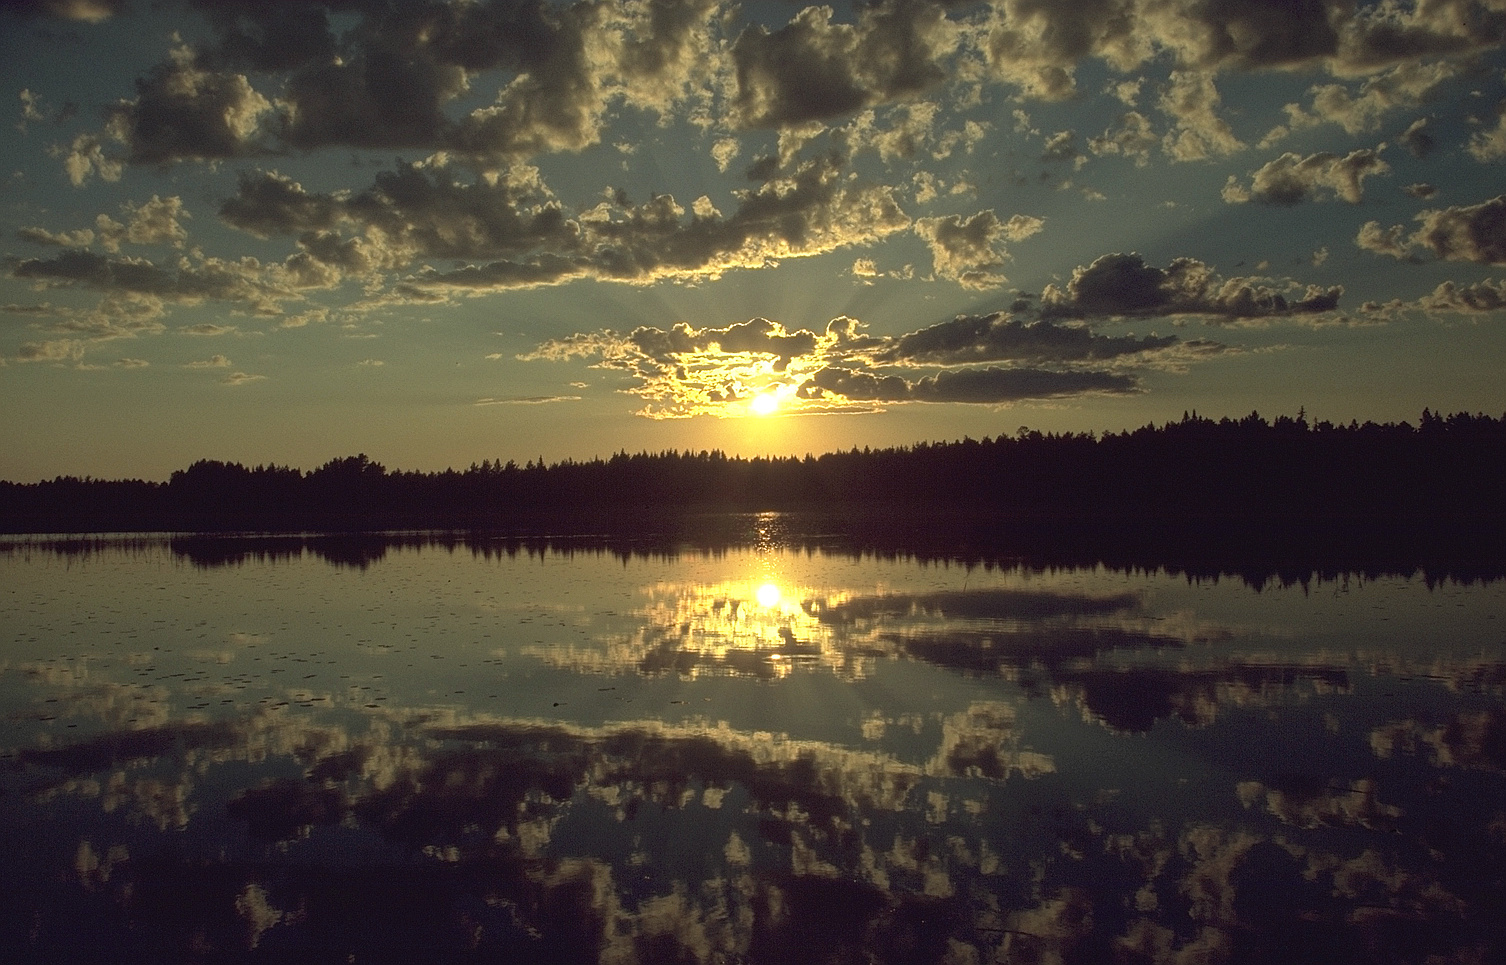 sunset_over_forest_and_lake_north_sweden_july_2005.jpg